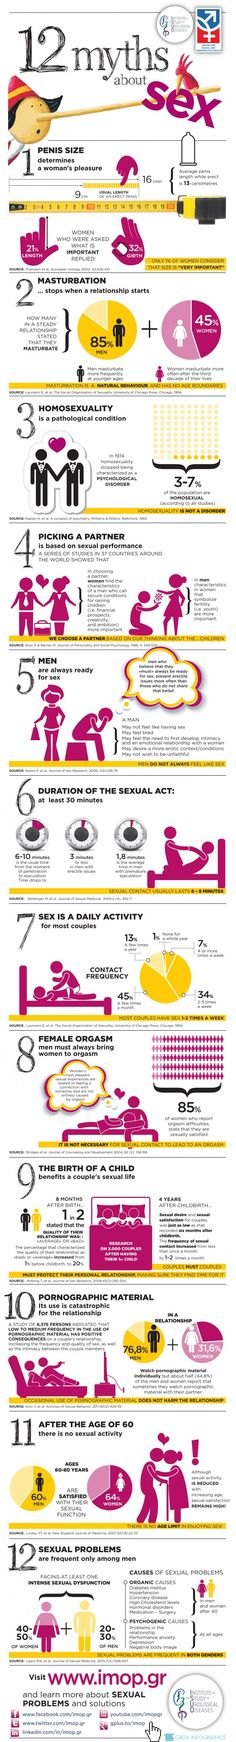 This Graphic Dispels 12 of the Most Common Sexual Myths